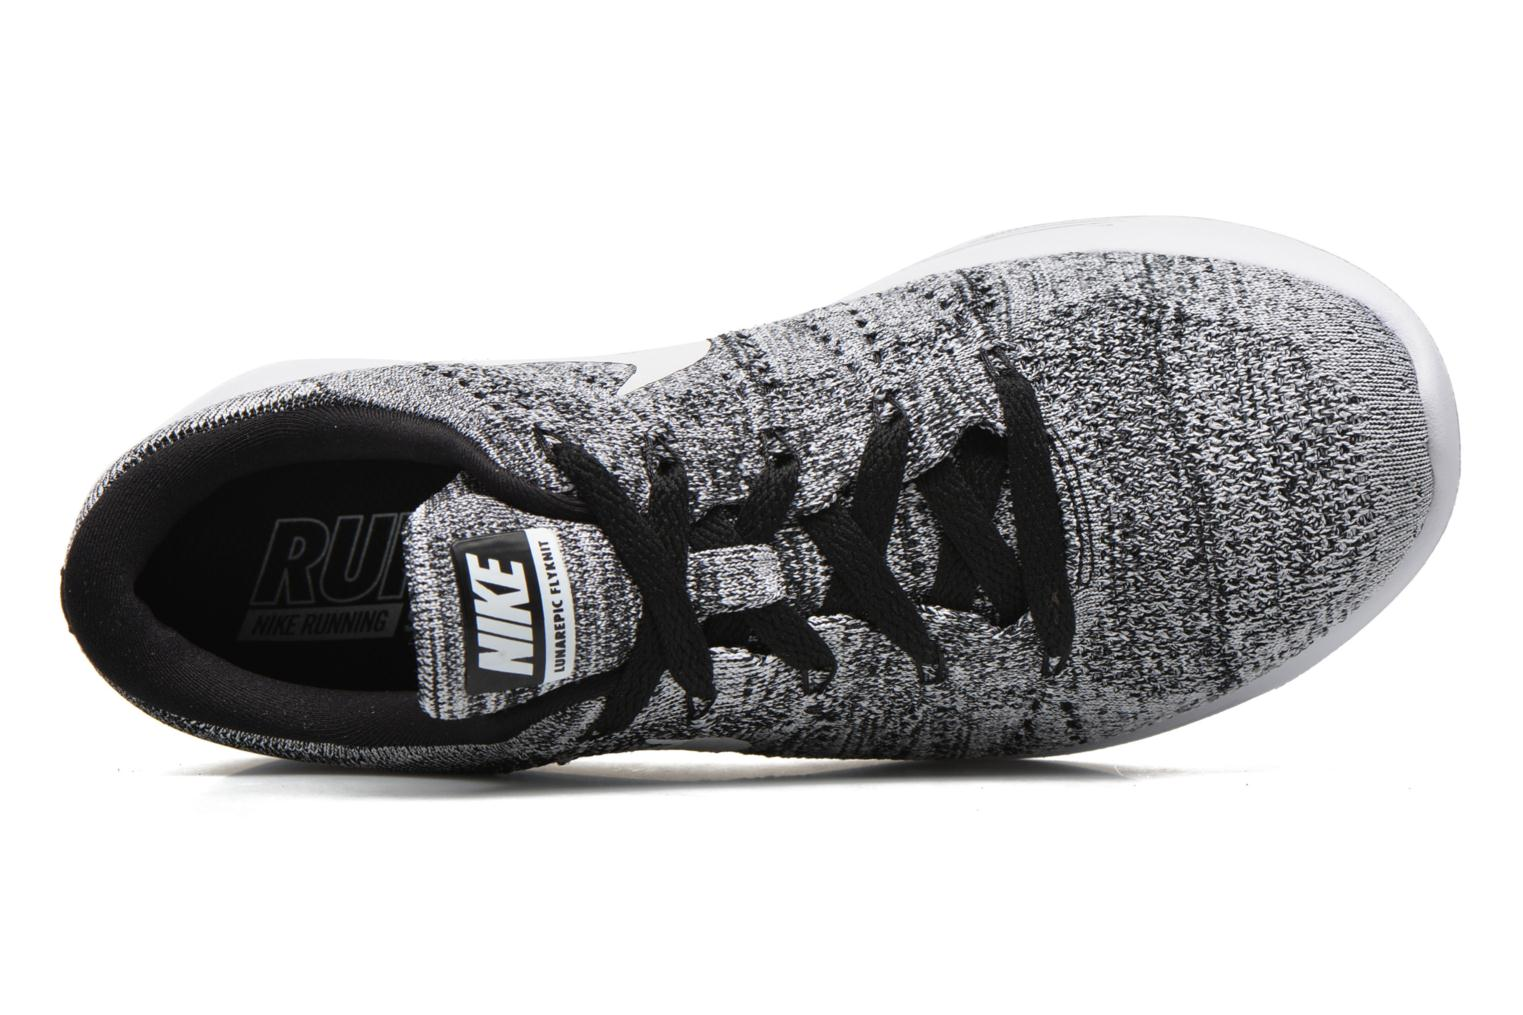 W Nike Lunarepic Low Flyknit Black/white